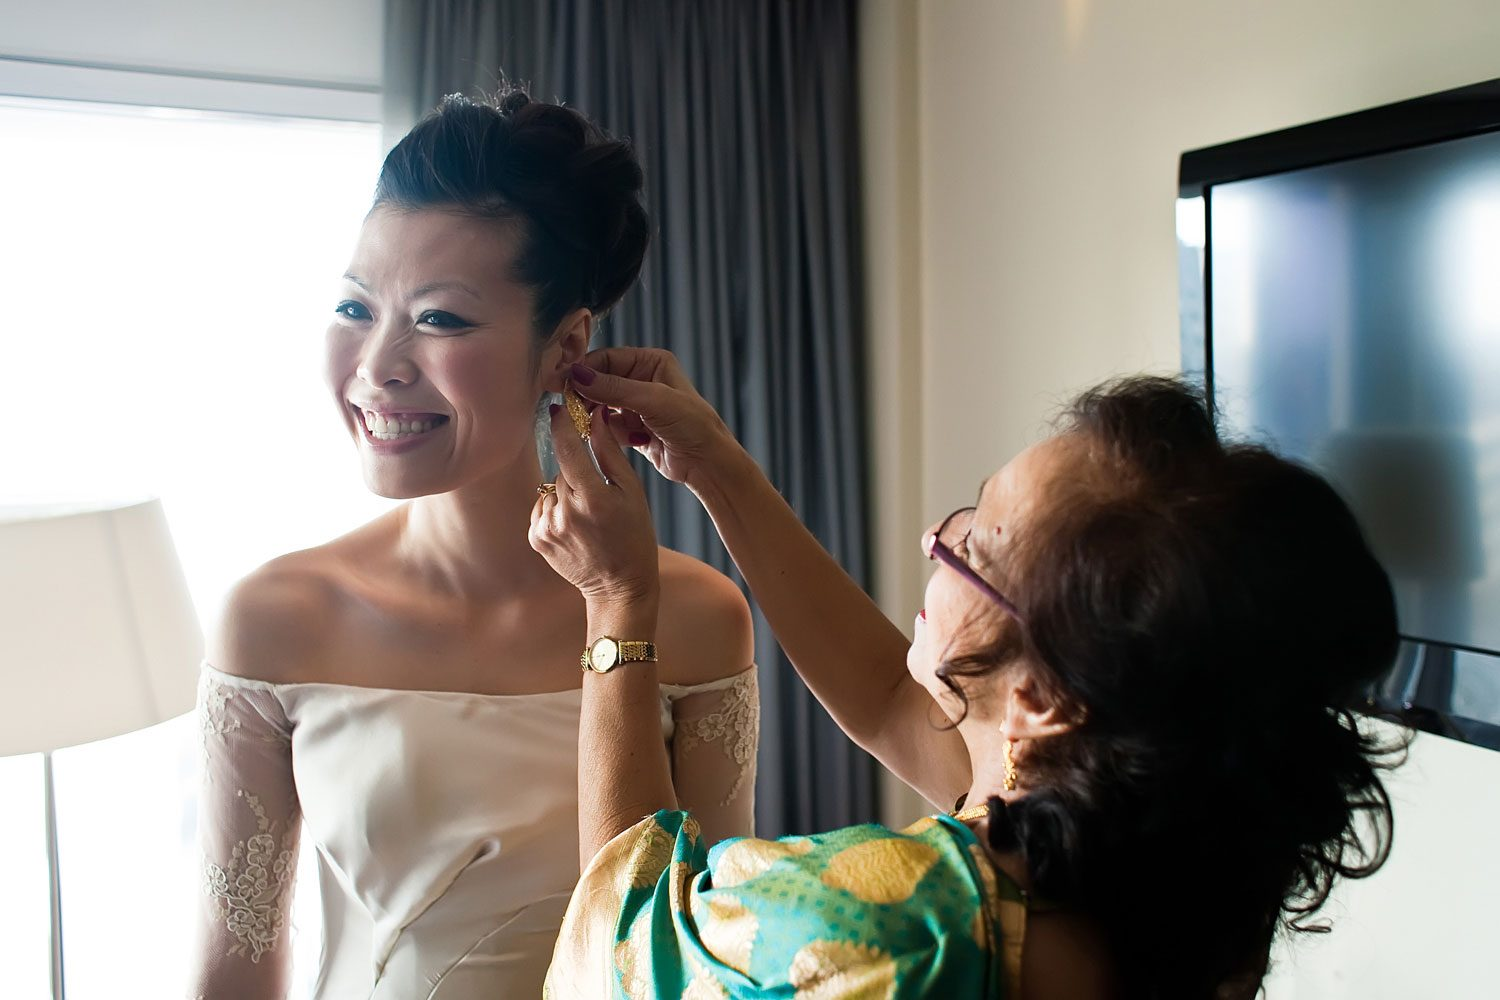 brides mother puts on earrings for bride